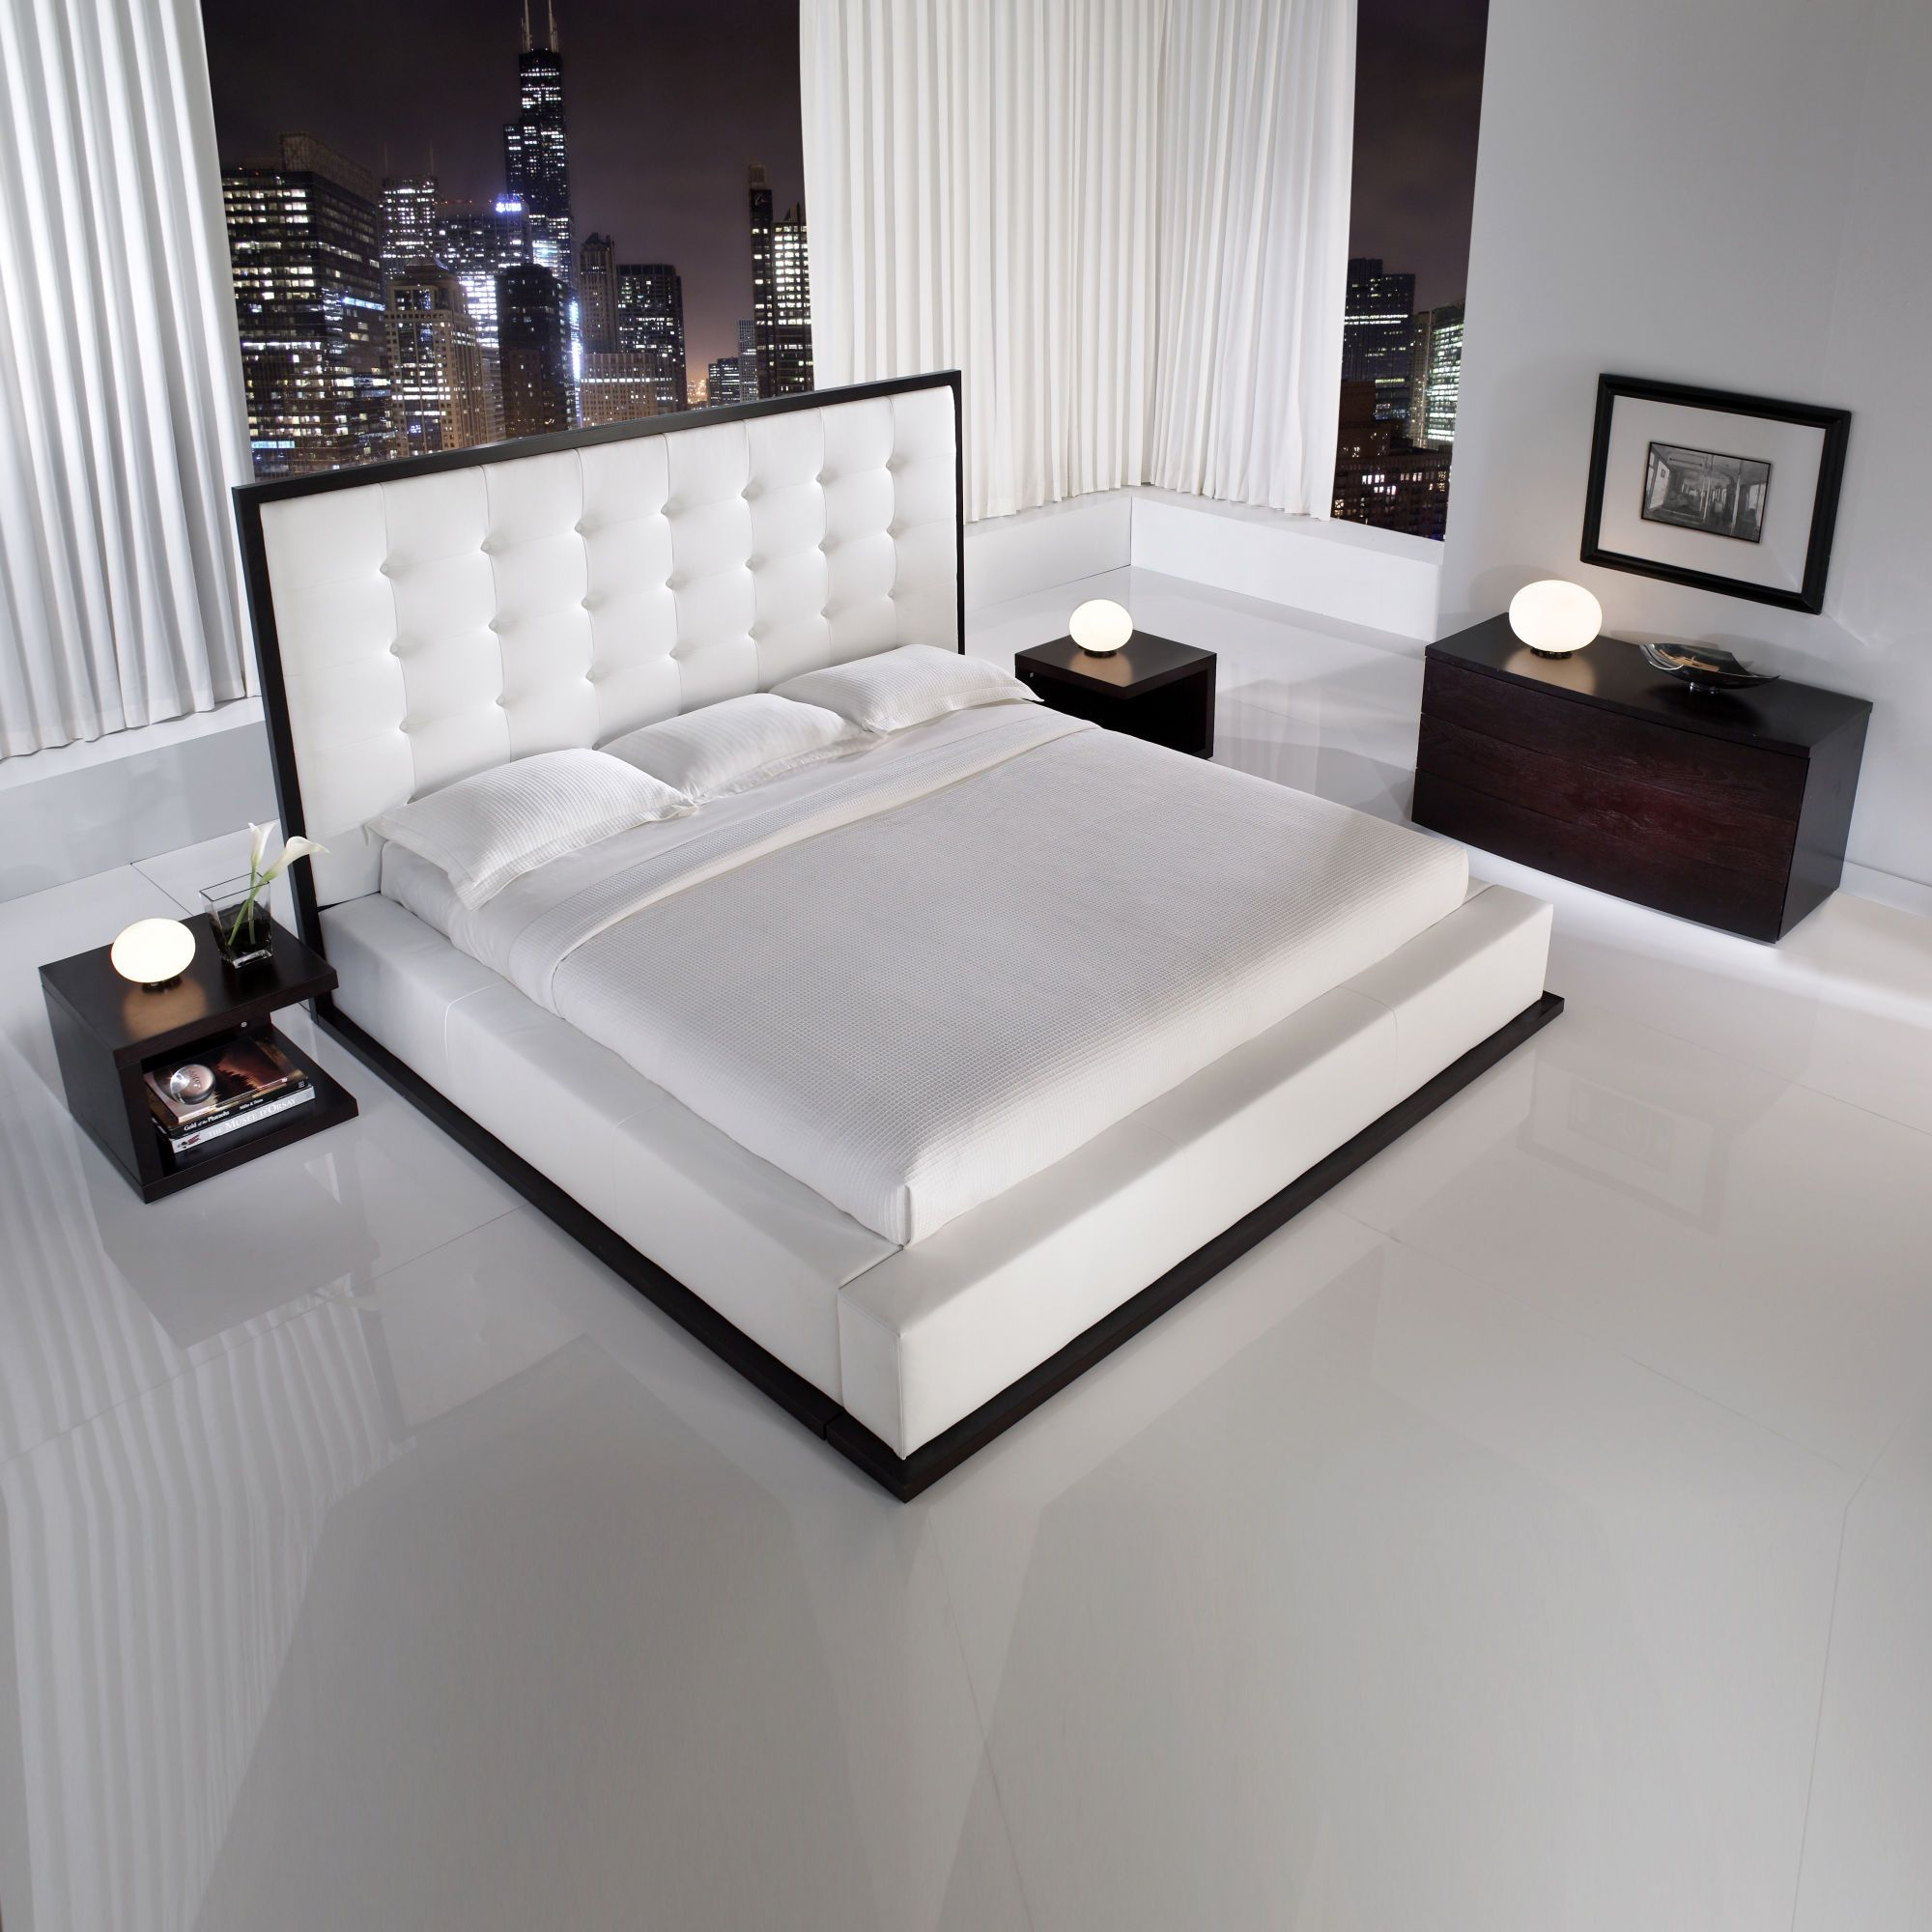 Modloft ludlow bed in white master suite